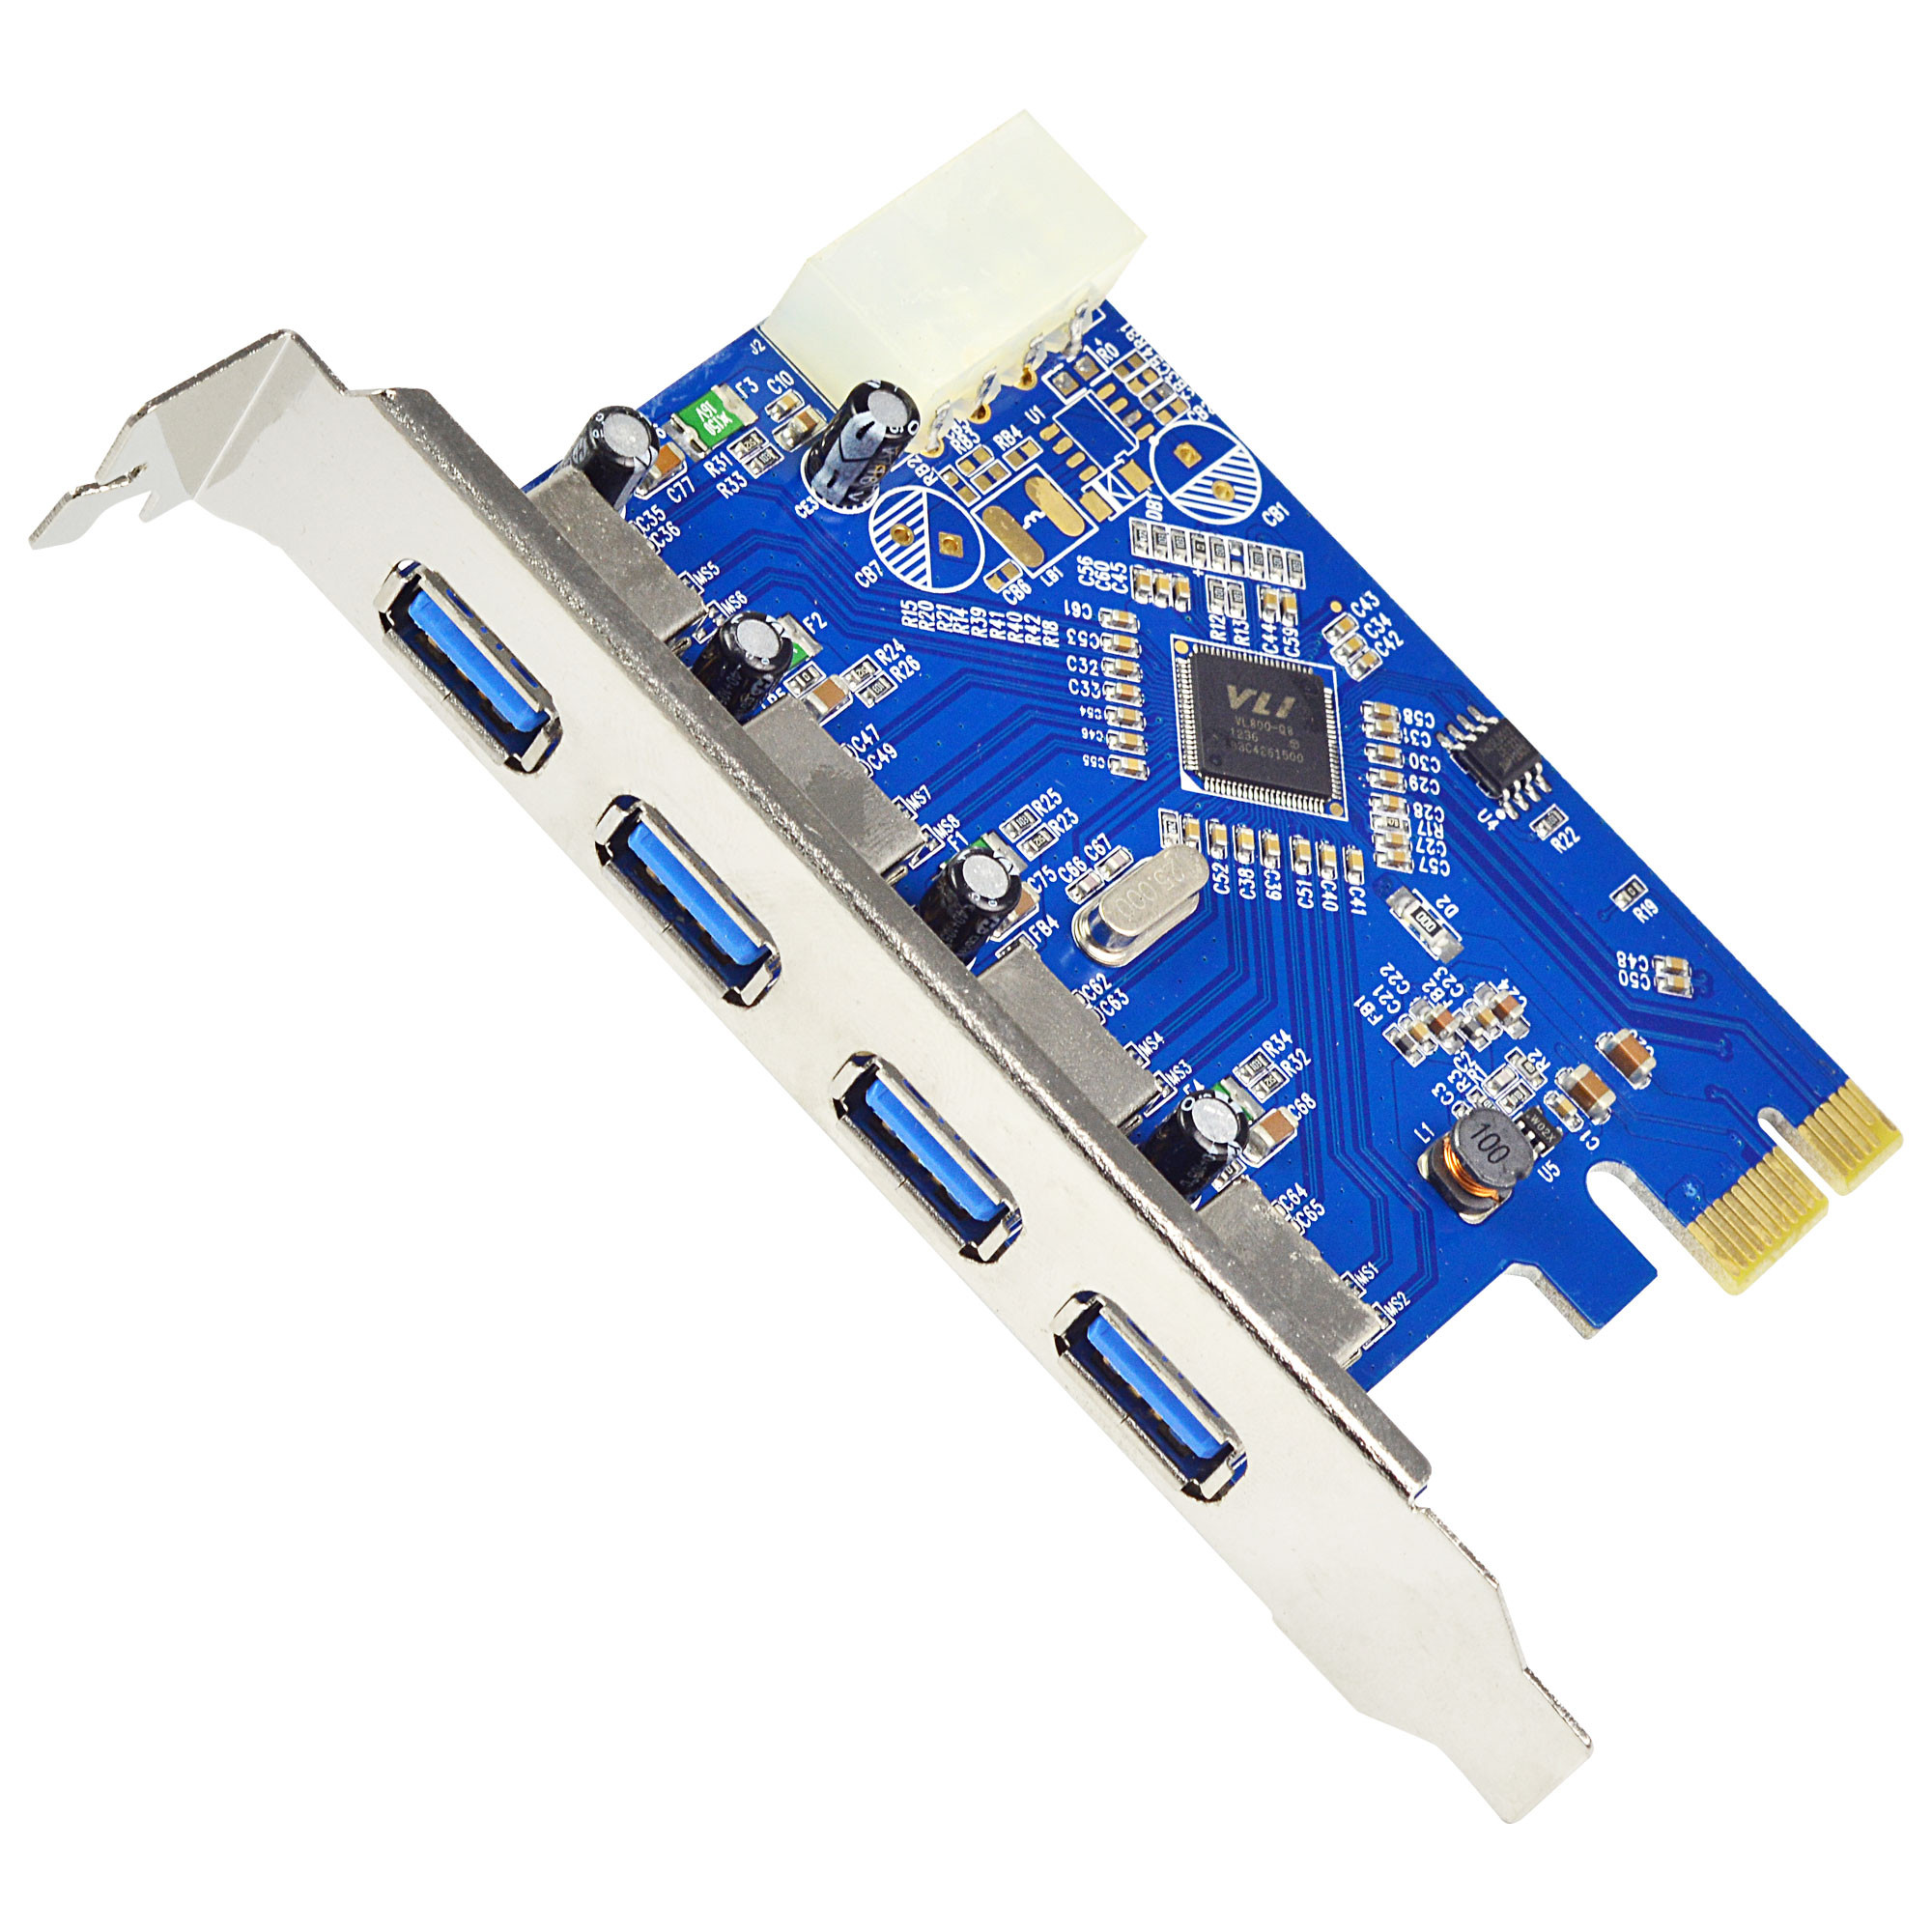 MENGS® PCI Express to 4 Port USB 3.0 HUB Card Adapter PC Desktop Computer Upgrade PCI E